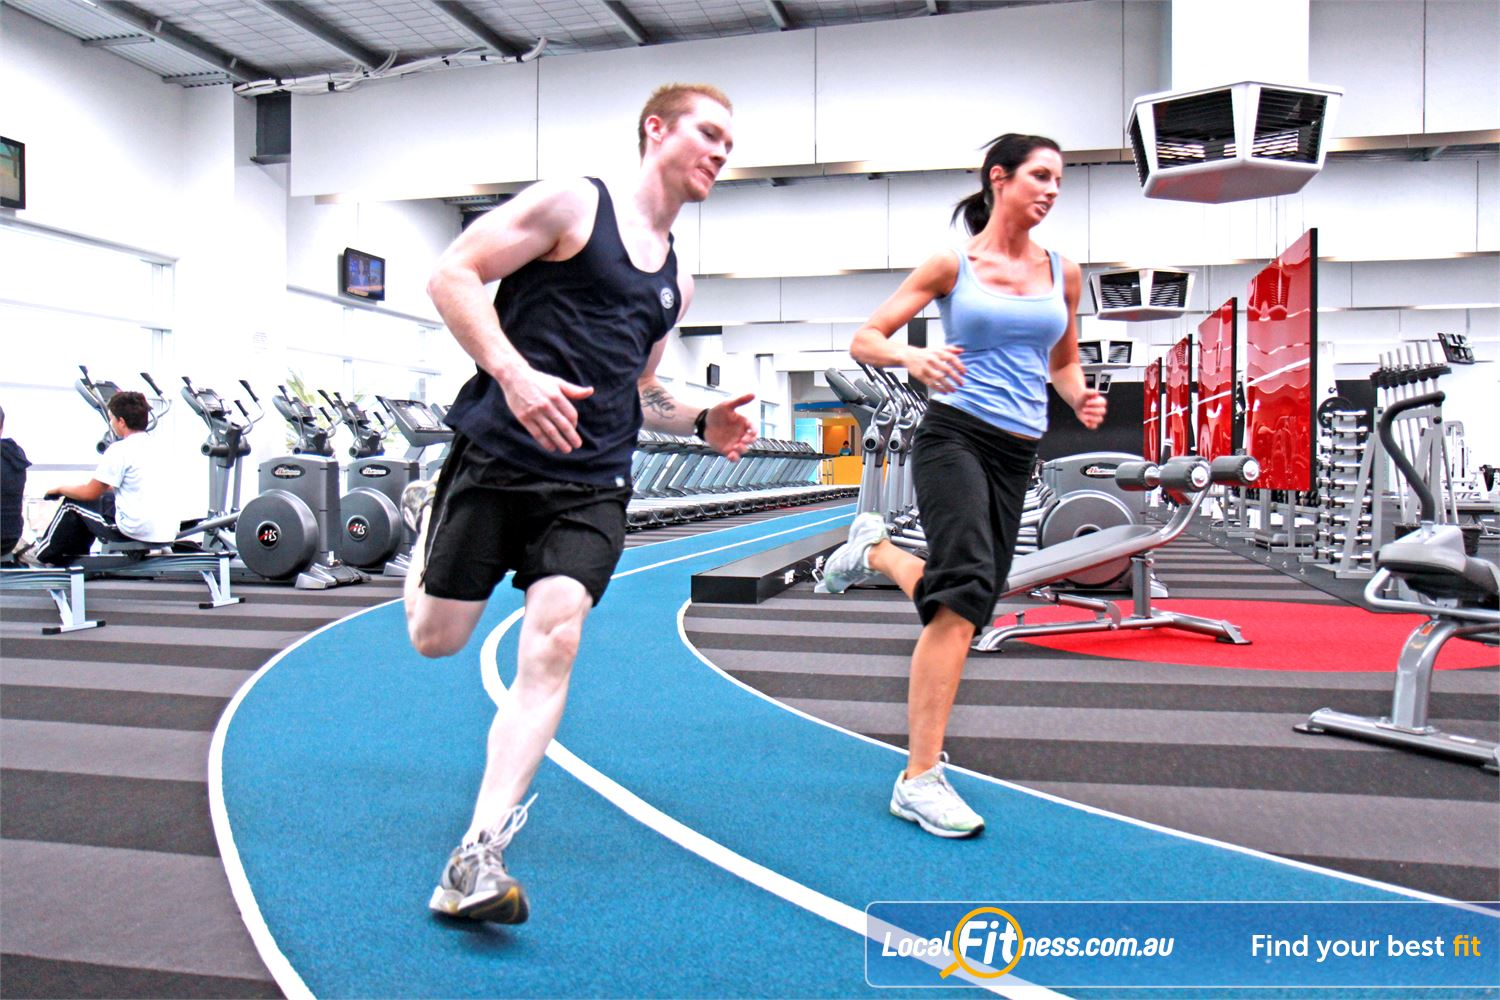 Genesis Fitness Clubs Maidstone Race your way to fitness with our indoor running track.